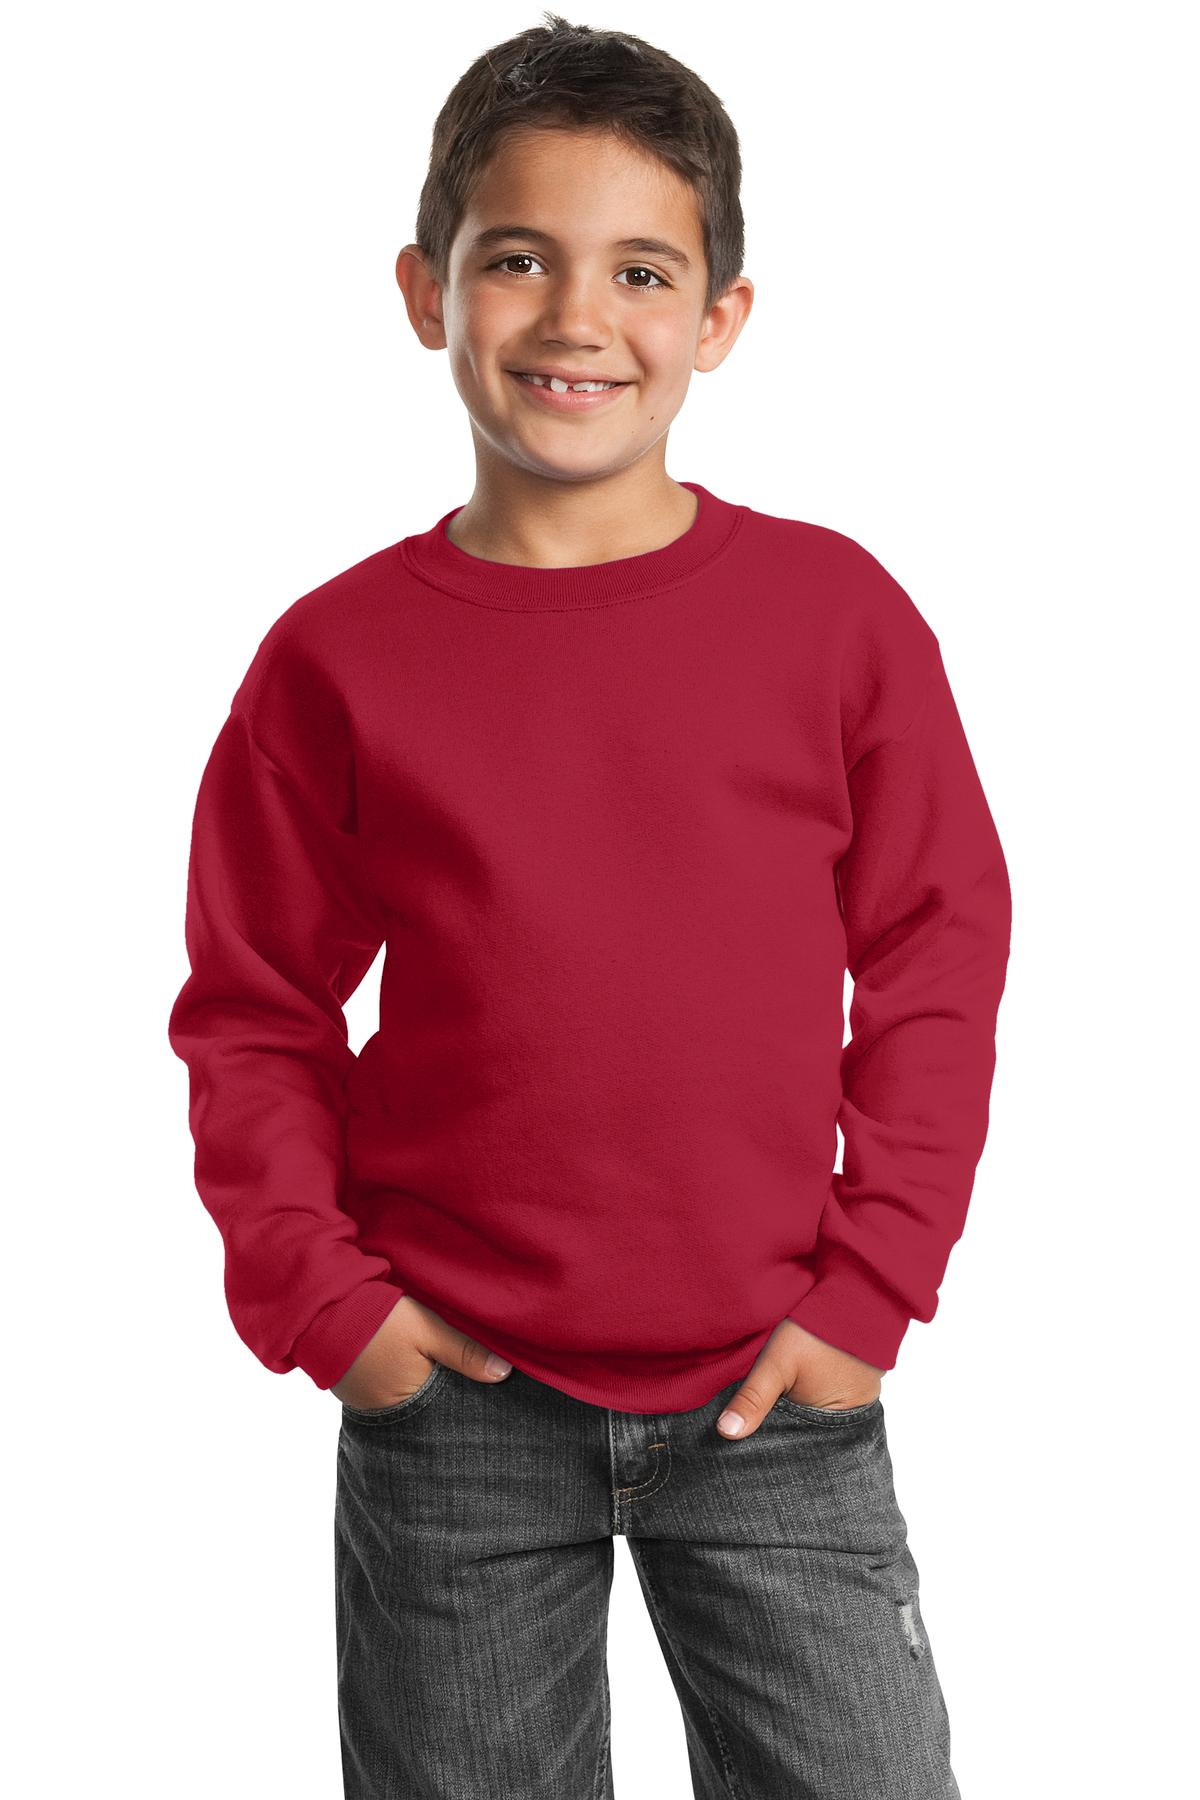 Port & Company ®  - Youth Core Fleece Crewneck Sweatshirt.  PC90Y - Red